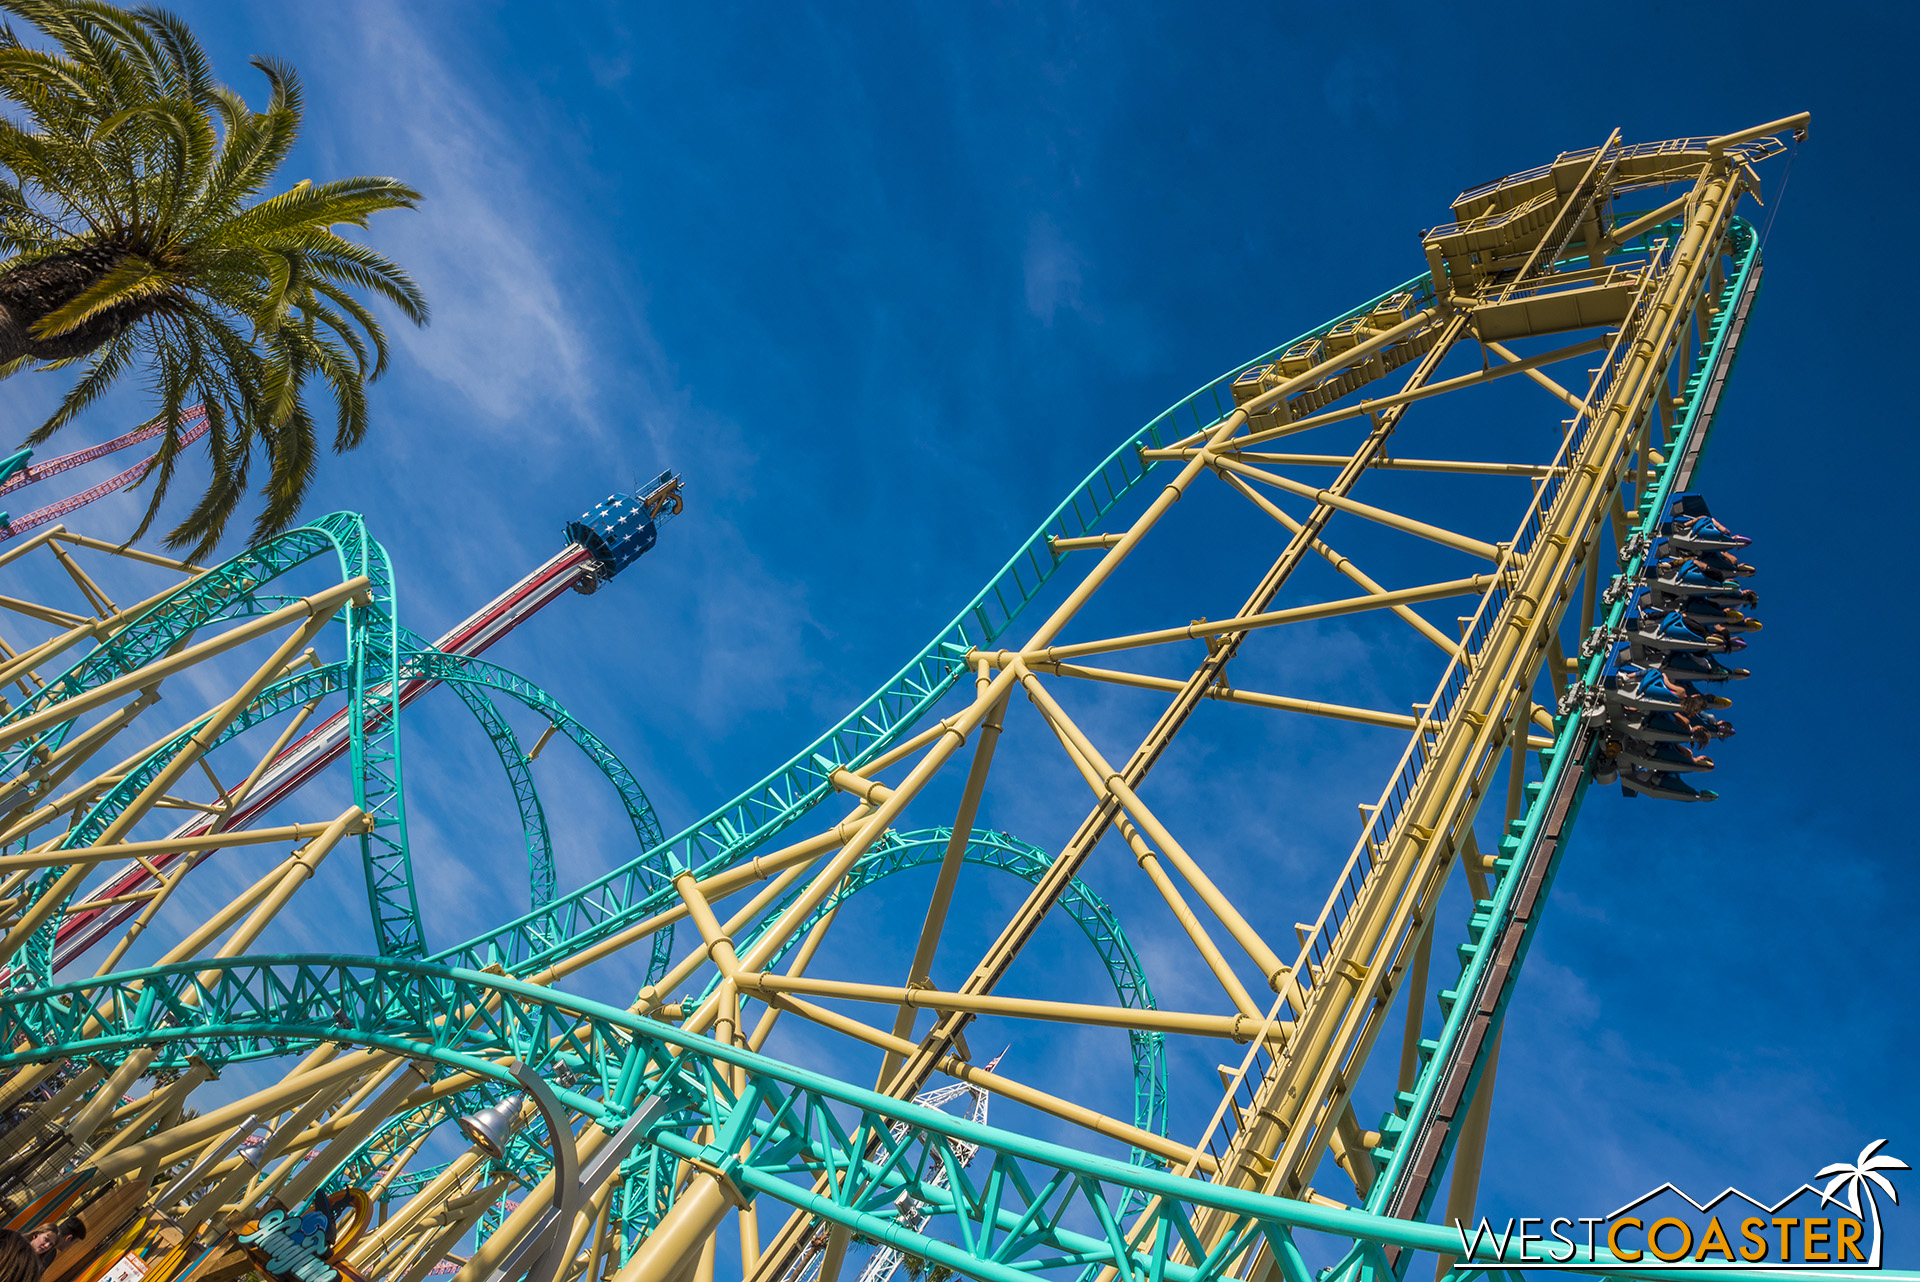 HangTime is close to turning 1 years old, and it's still incredibly photogenic!